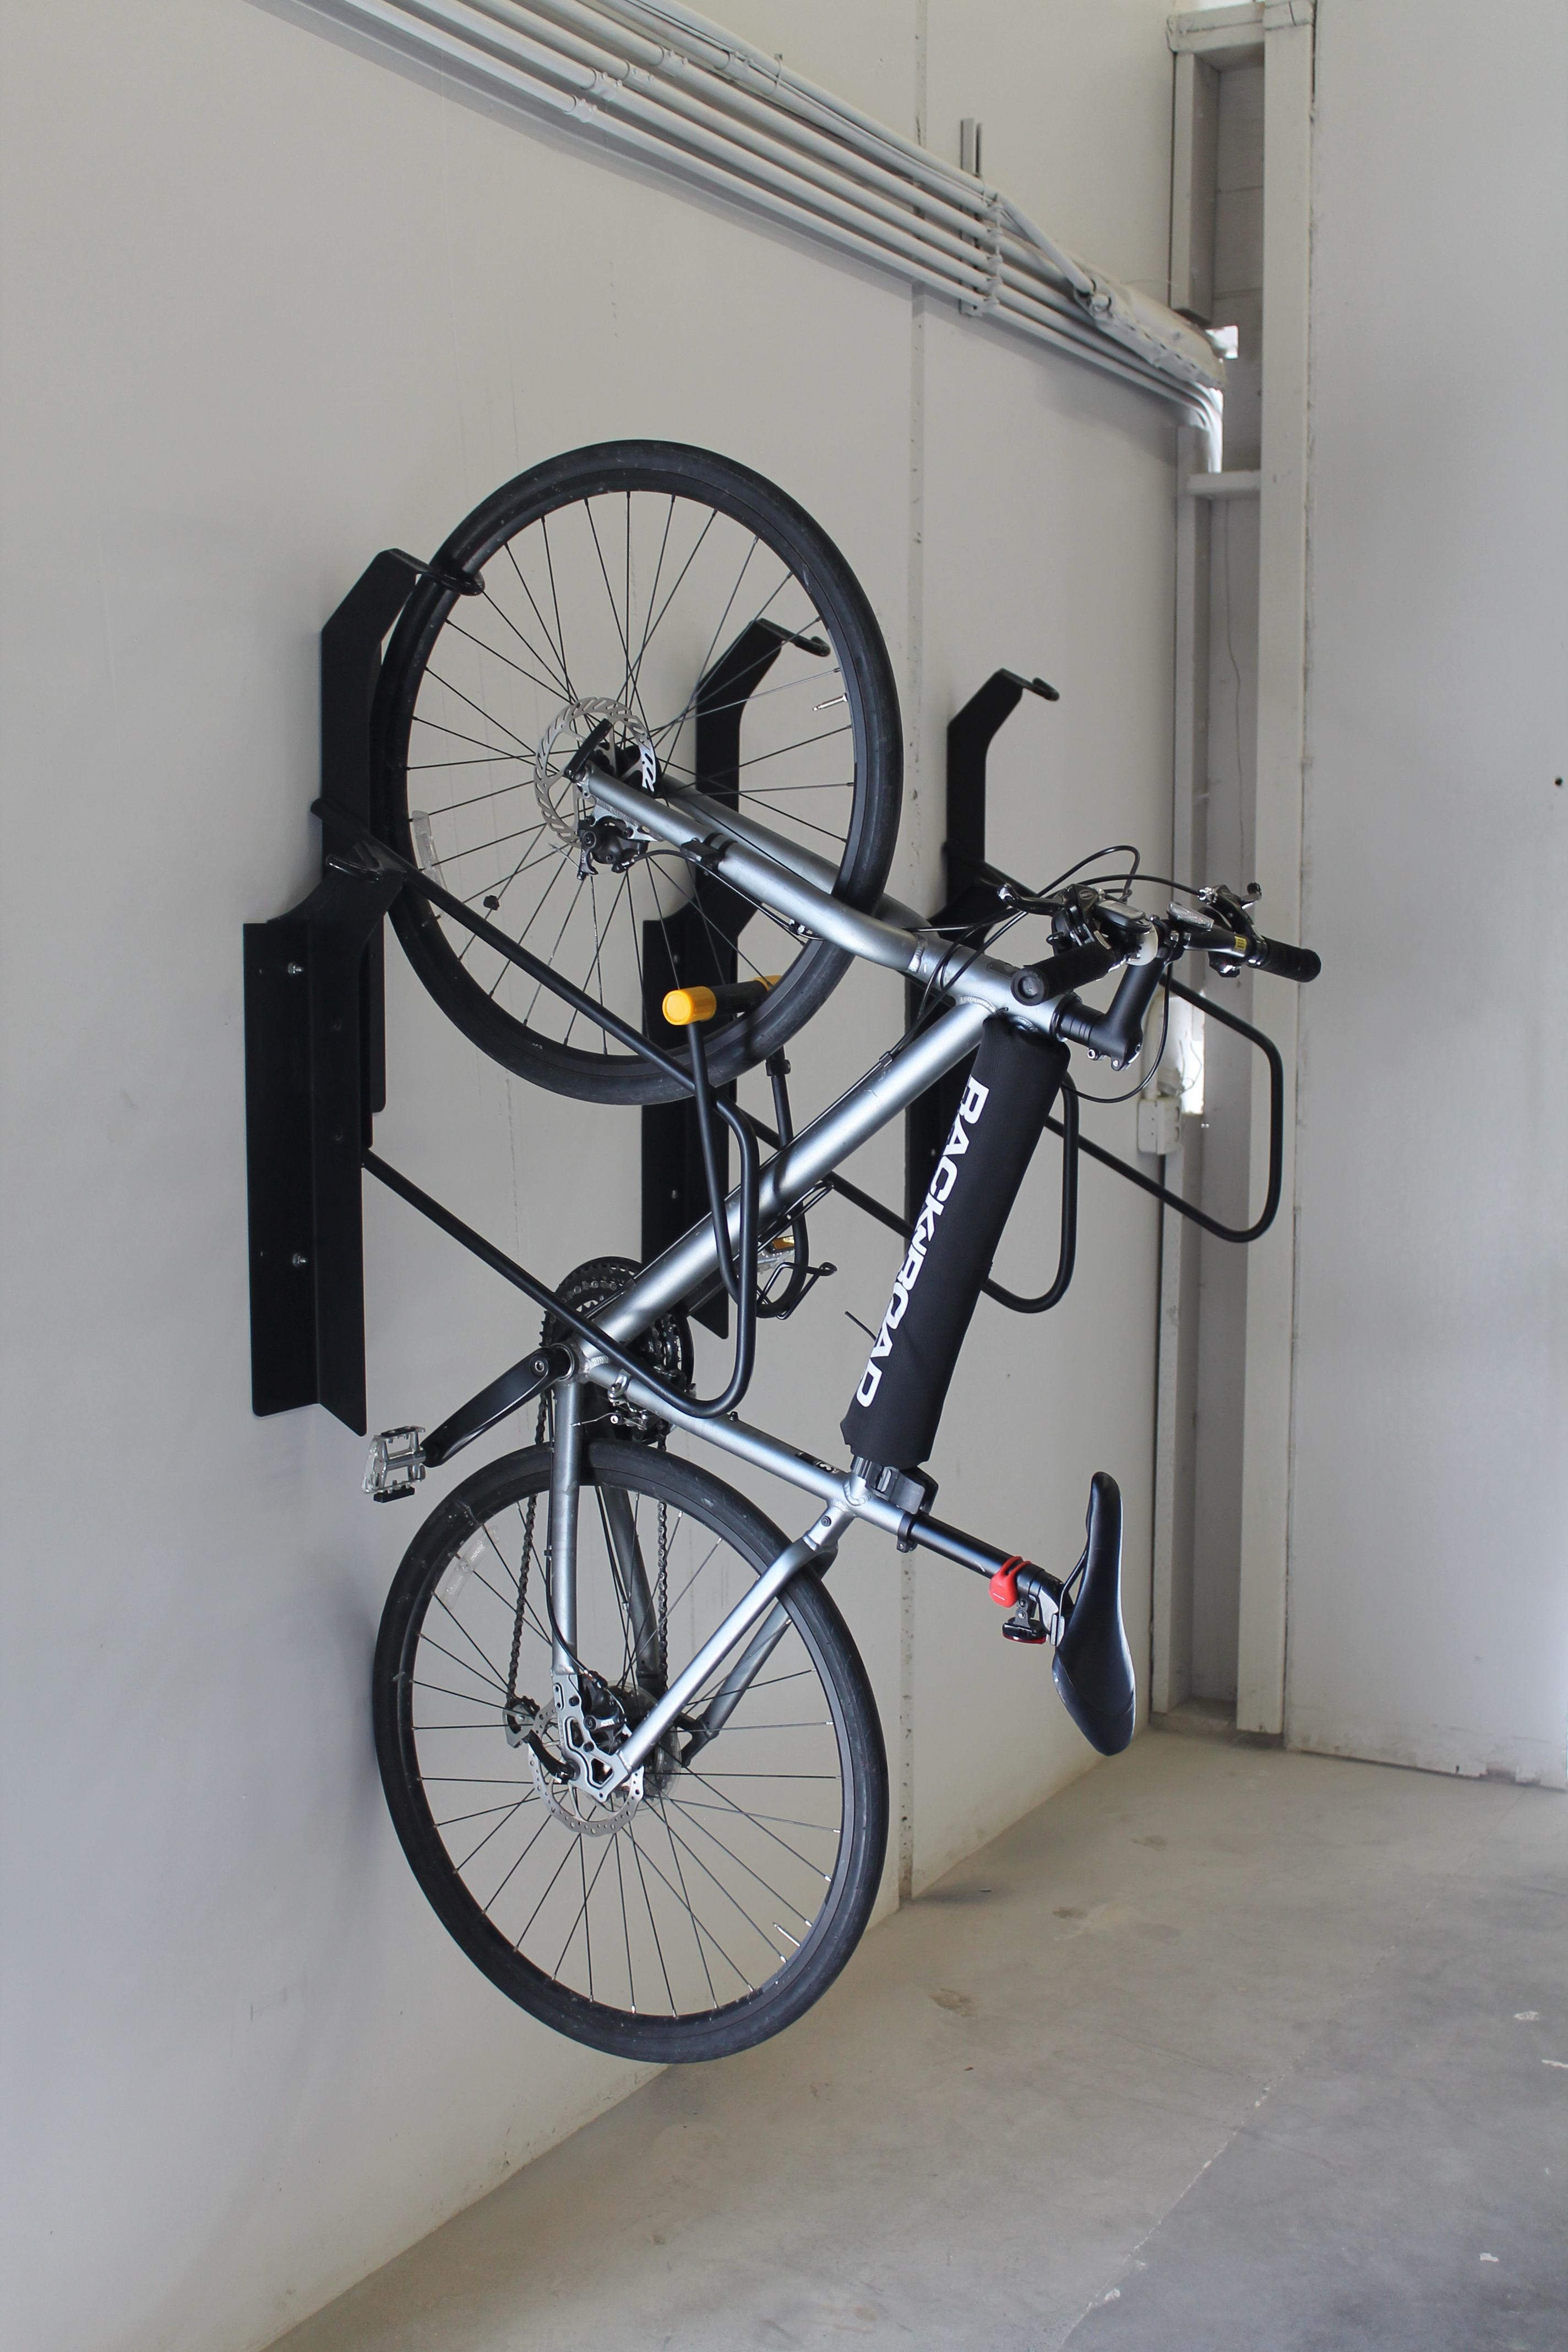 Vertical Bicycle Parking Has Never Looked Better The Vr2 Offset